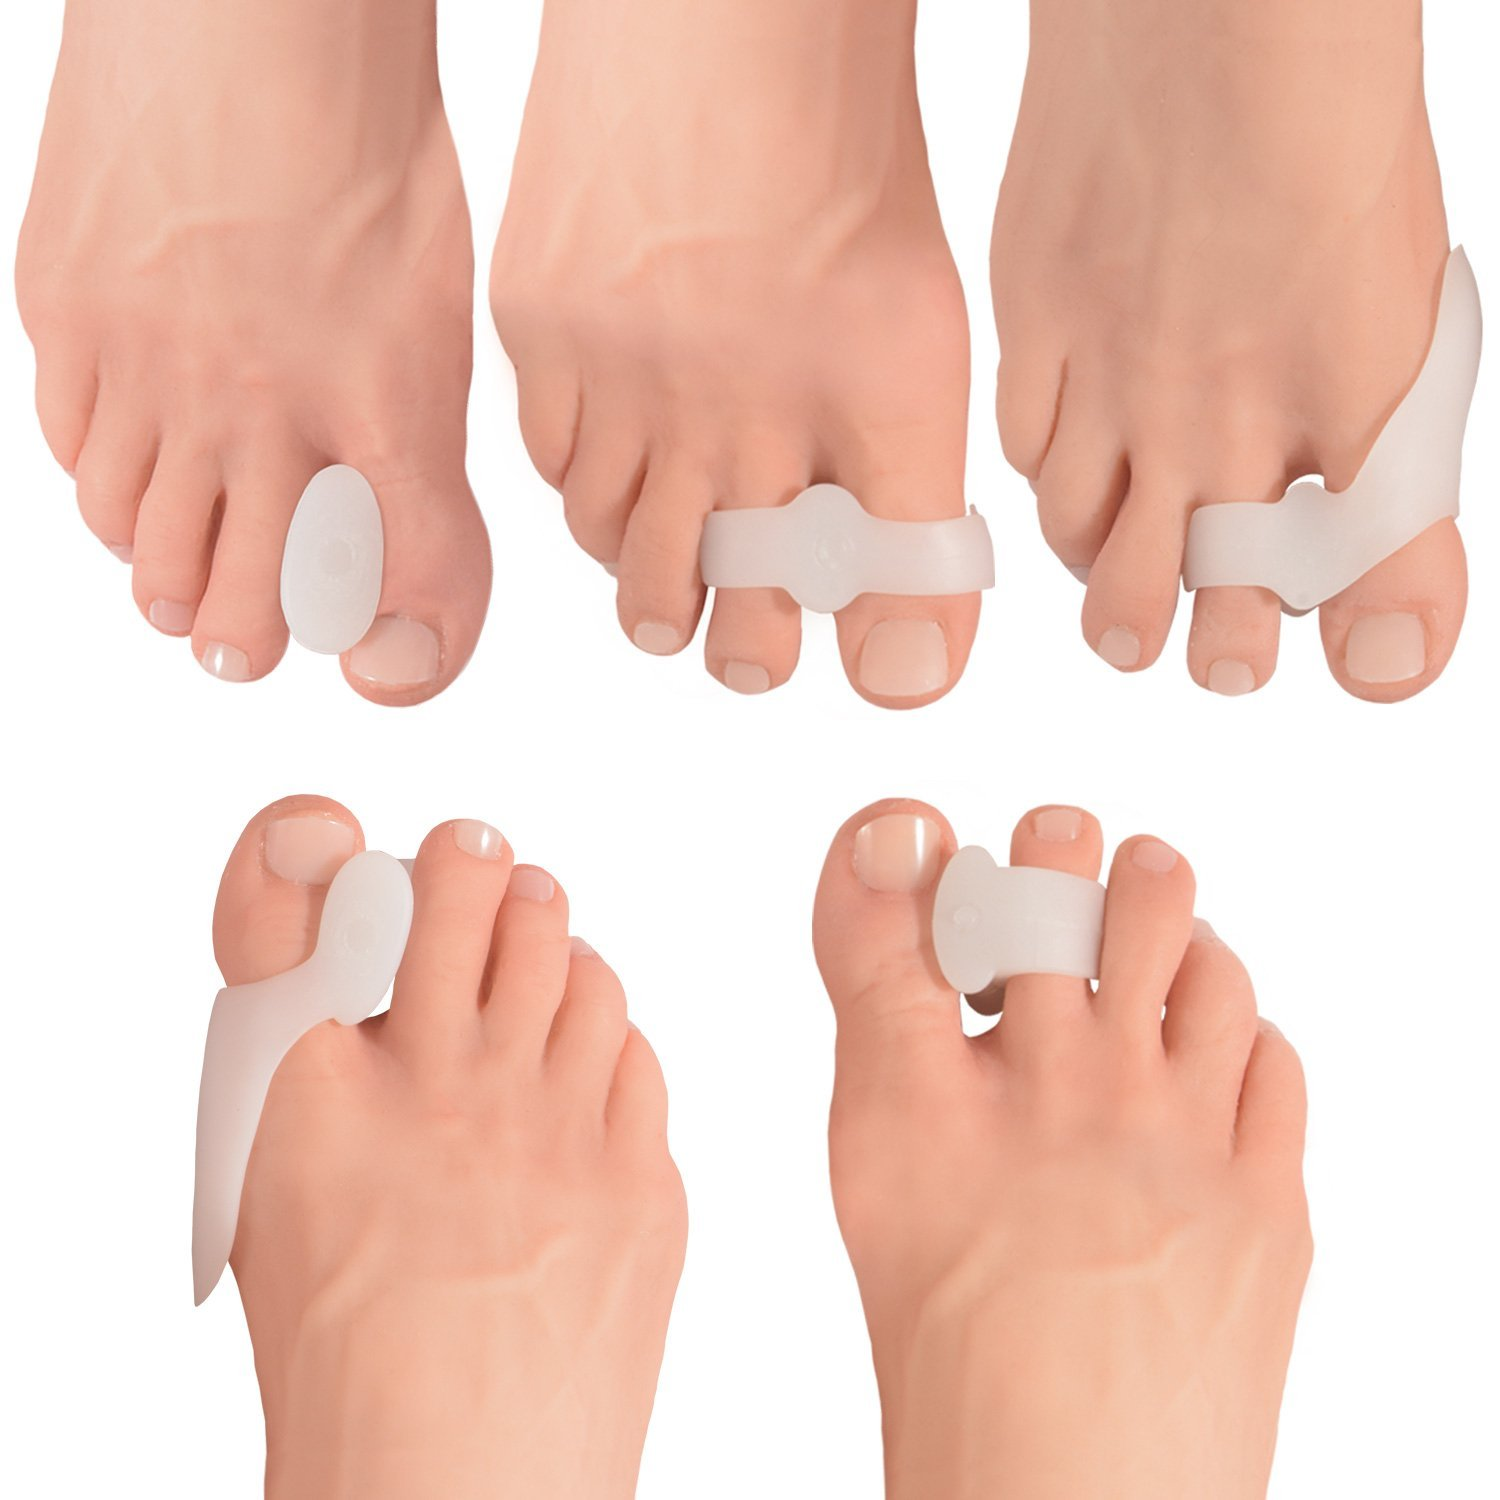 Dr. Frederick's Original 14 Piece Bunion Pad & Spacer Kit - 7 Pairs - Soft Gel Toe Separators & Bunion Cushions - Temporary Bunion Corrector - One Size Fits All Bunion Splint - Fast Bunion Relief